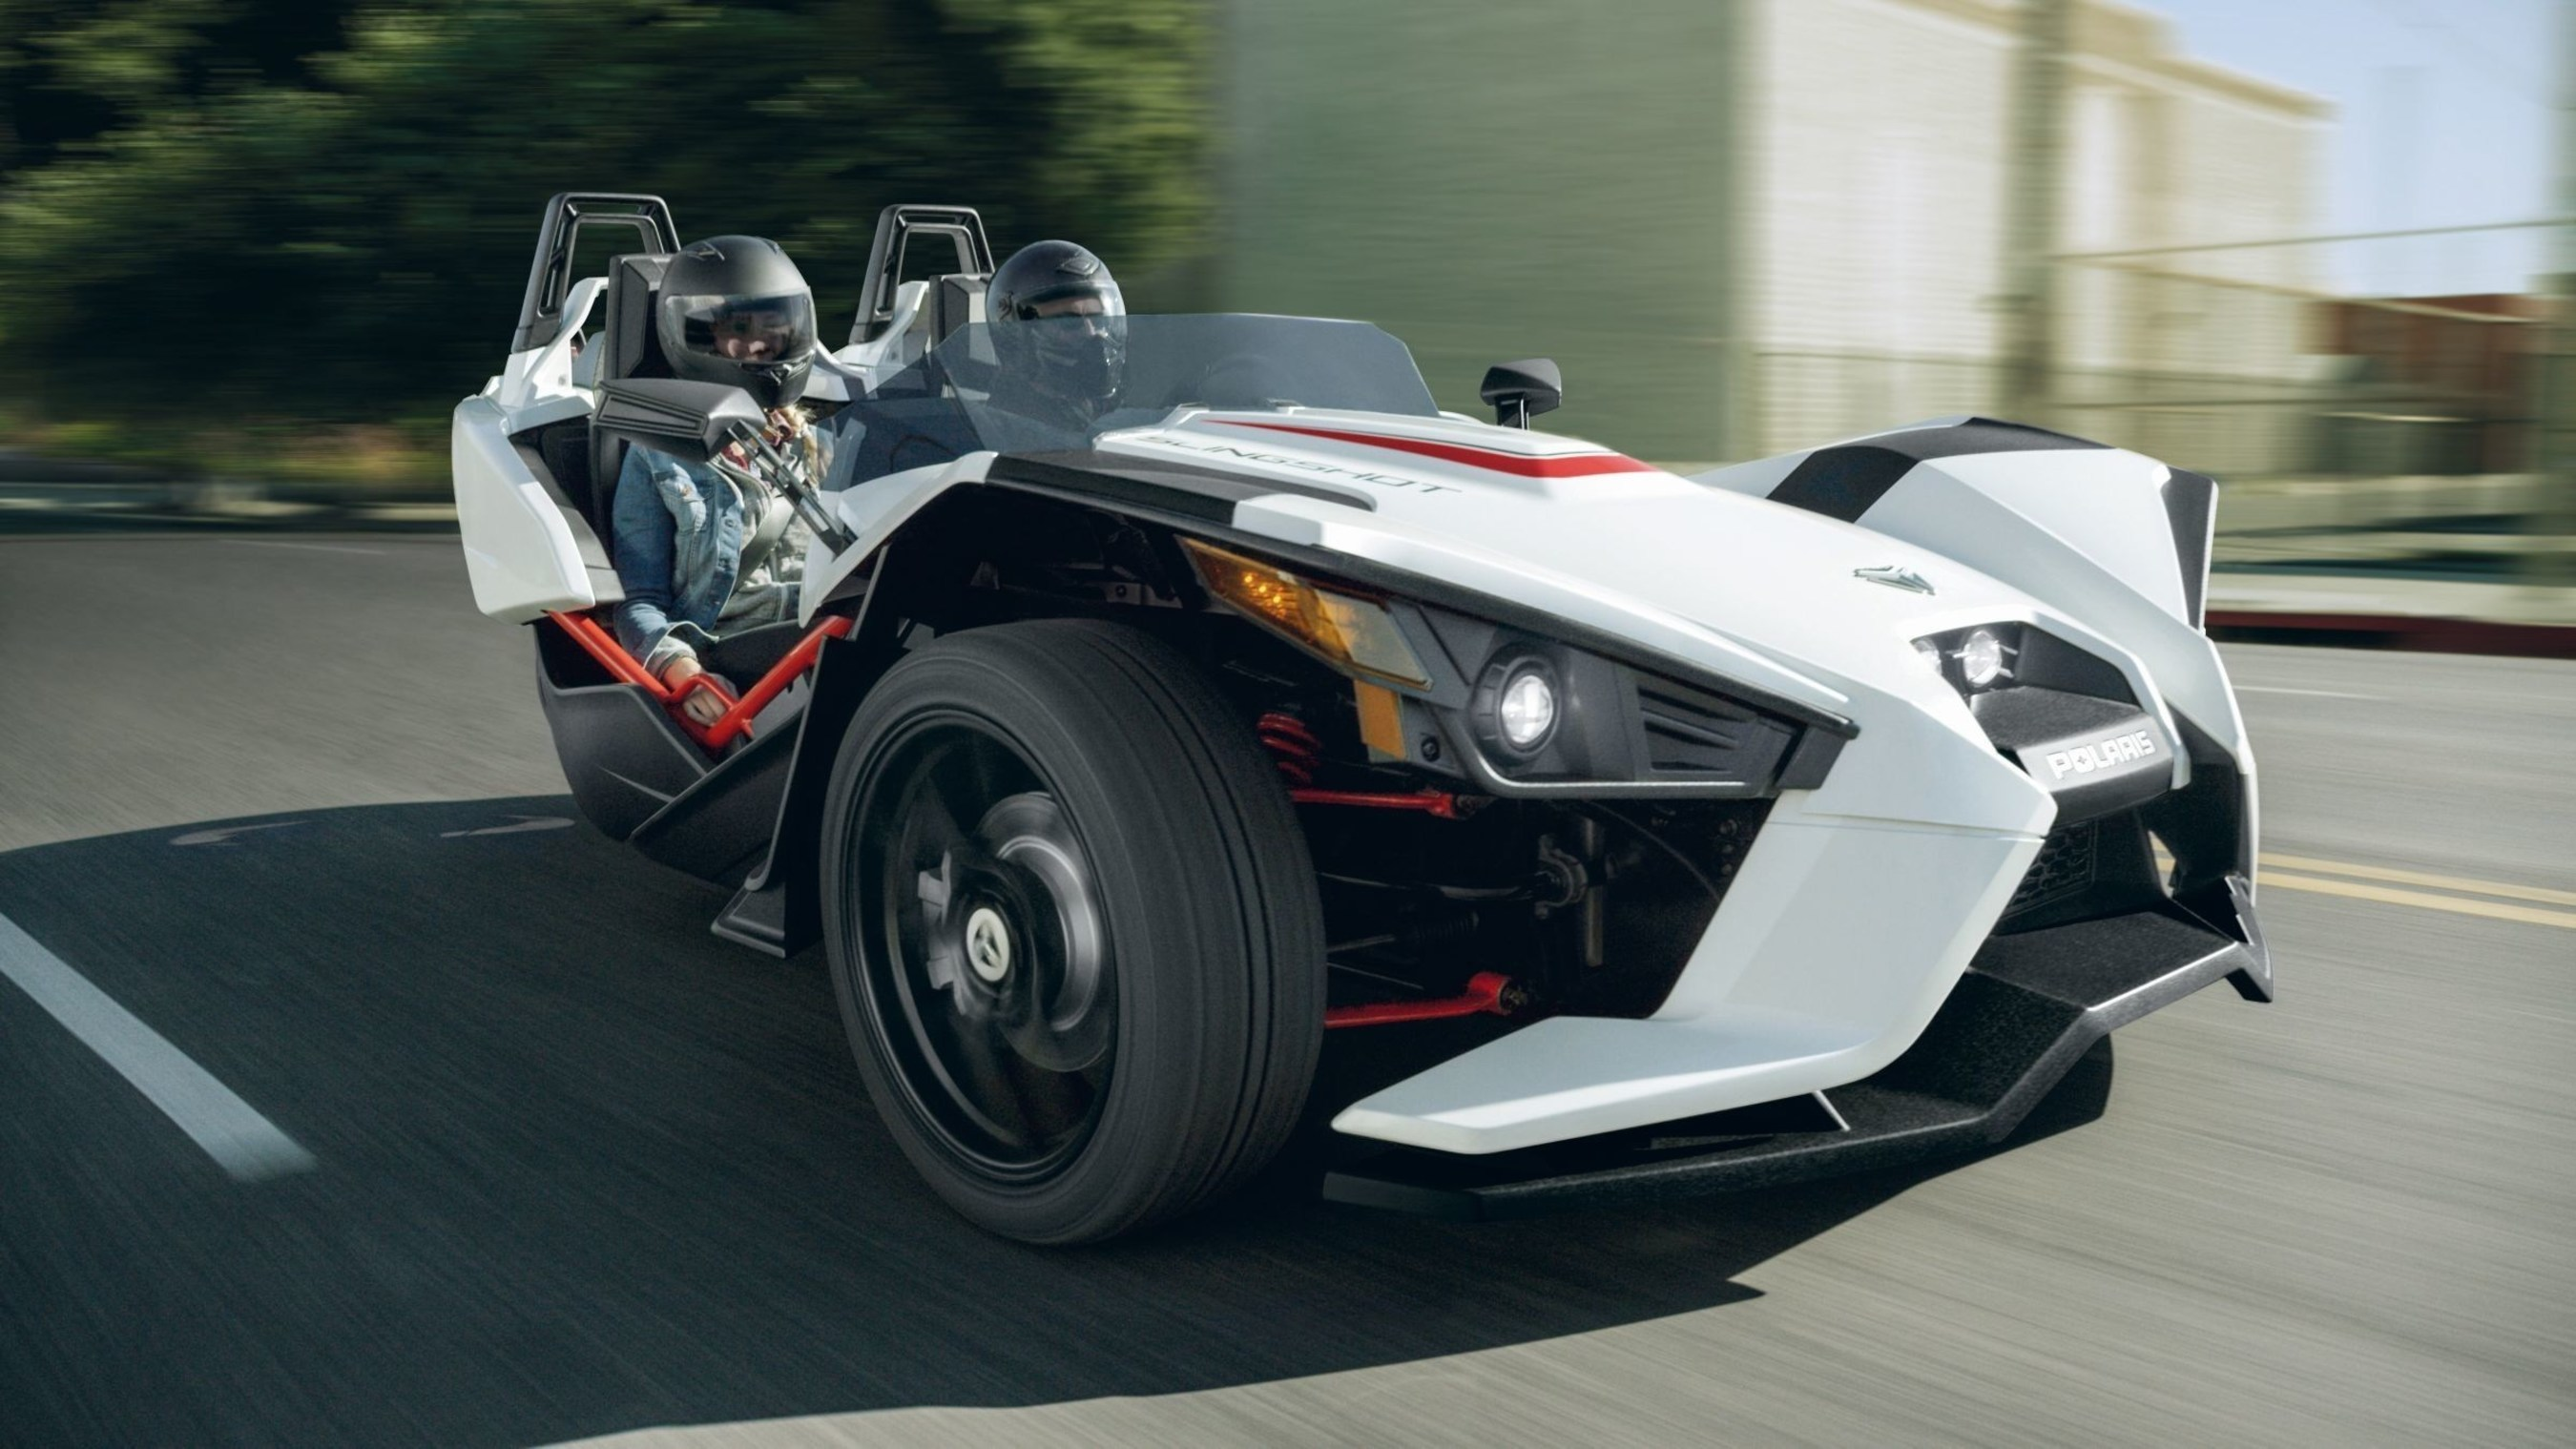 2016 Polaris Slingshot >> Polaris Unveils New Slingshot 2016 Spring Line Up